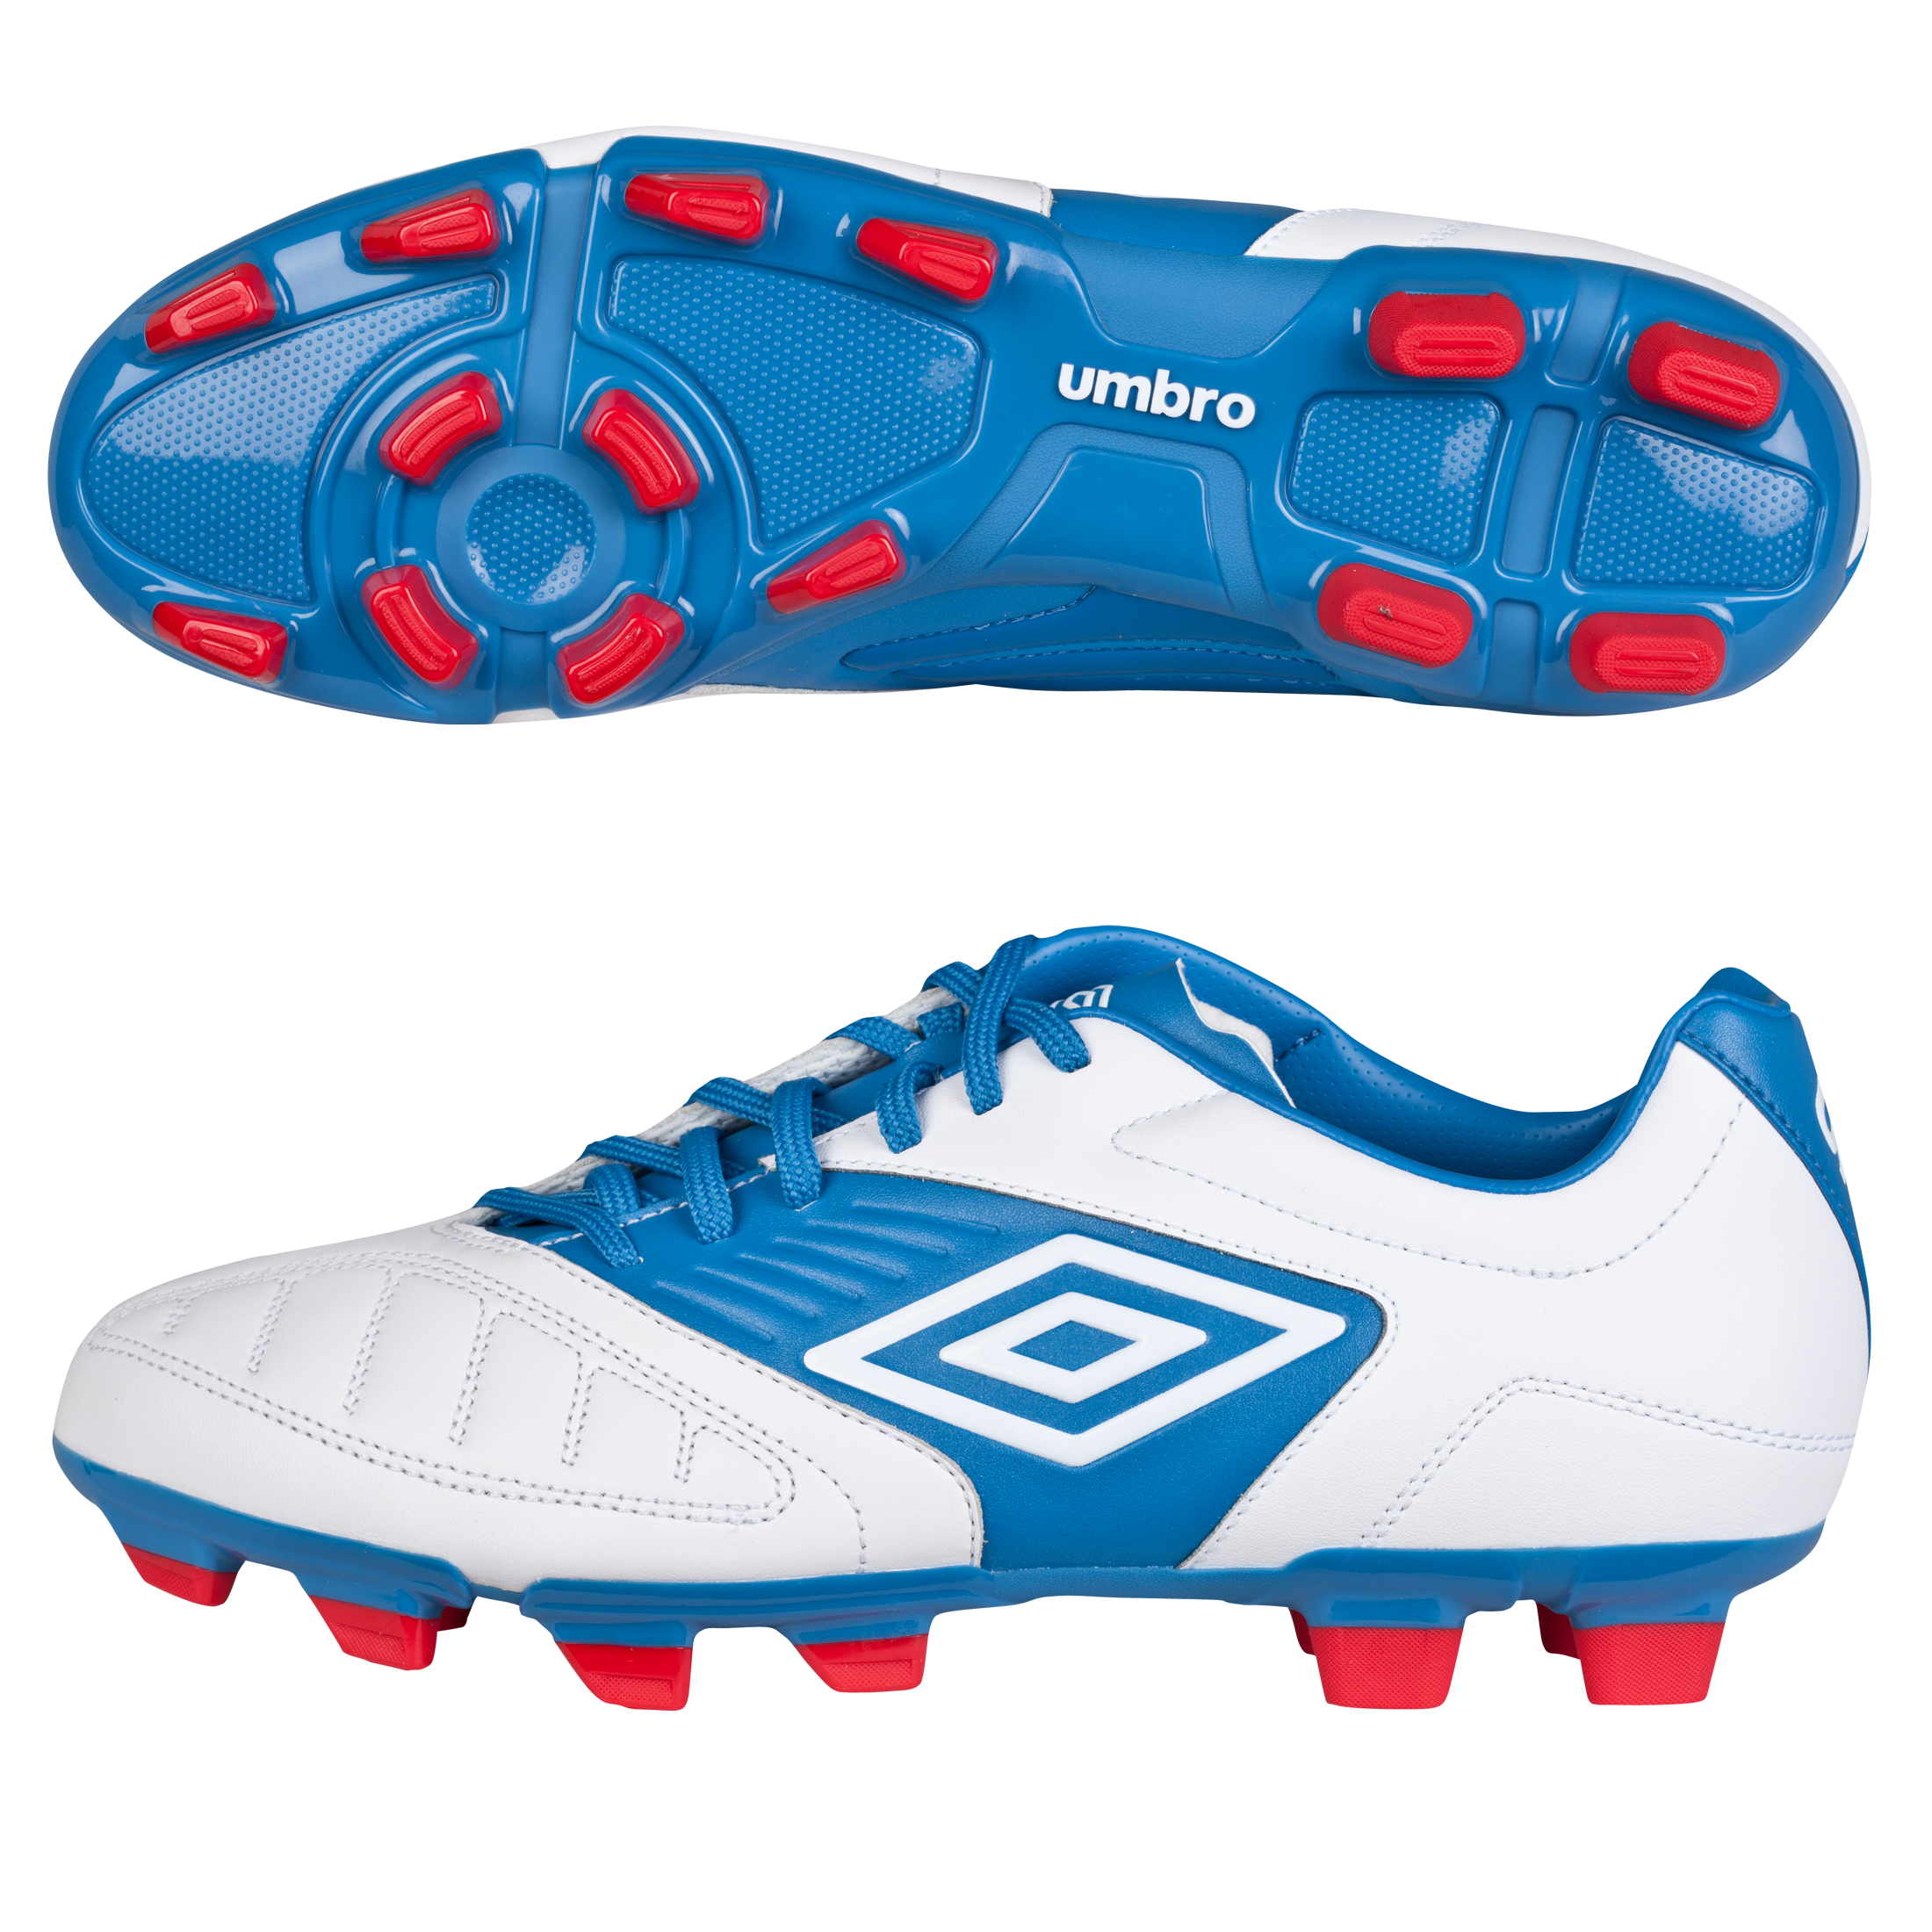 Umbro Geometra Premier Firm Ground Football Boots - White/Brilliant Blue/True Red